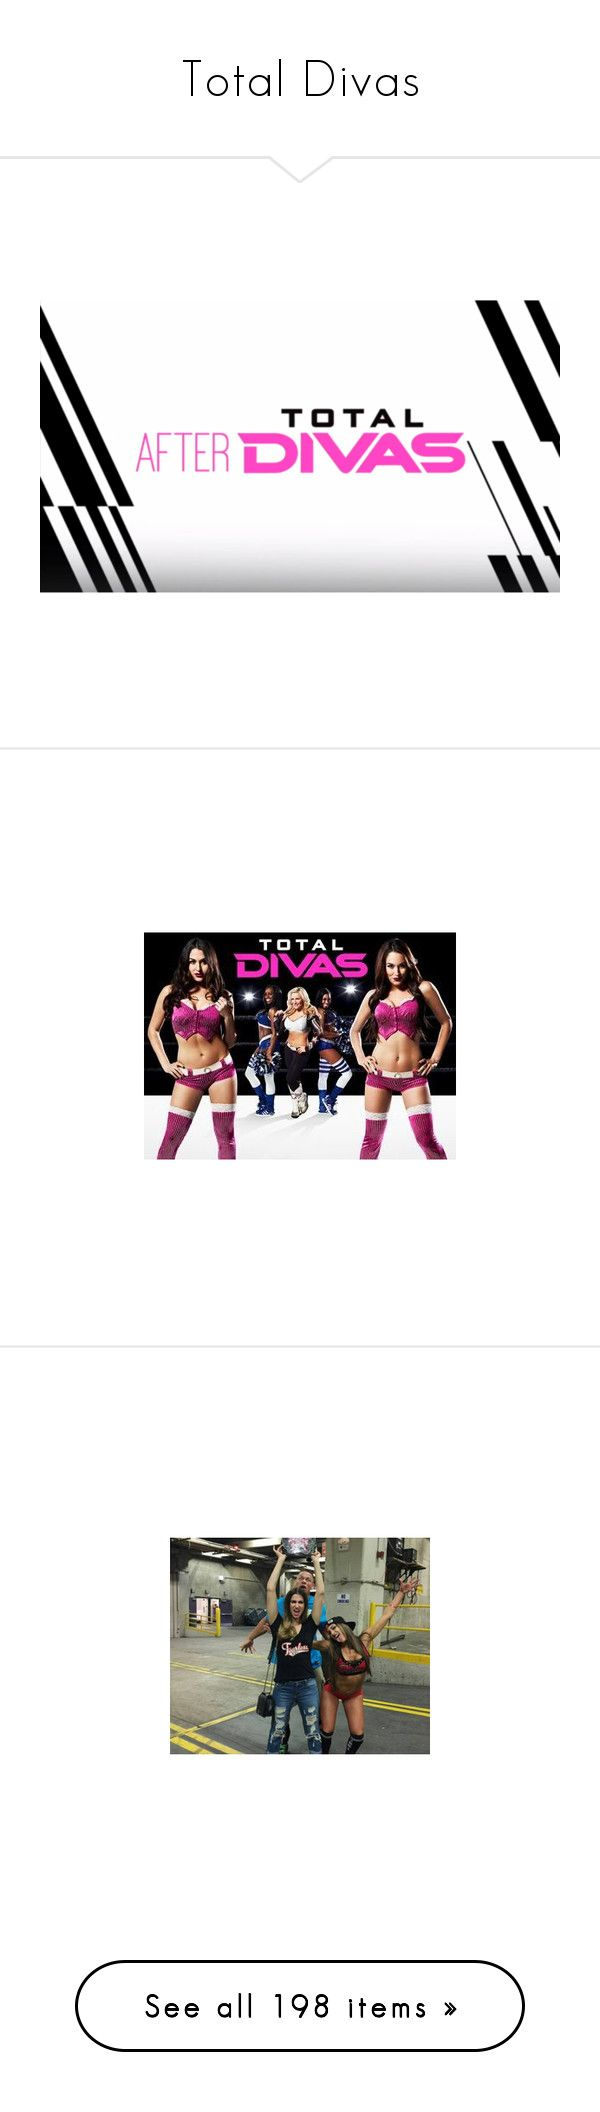 """Total Divas"" by wwetnagirl ❤ liked on Polyvore featuring wwe, total divas, paige and bella twins"